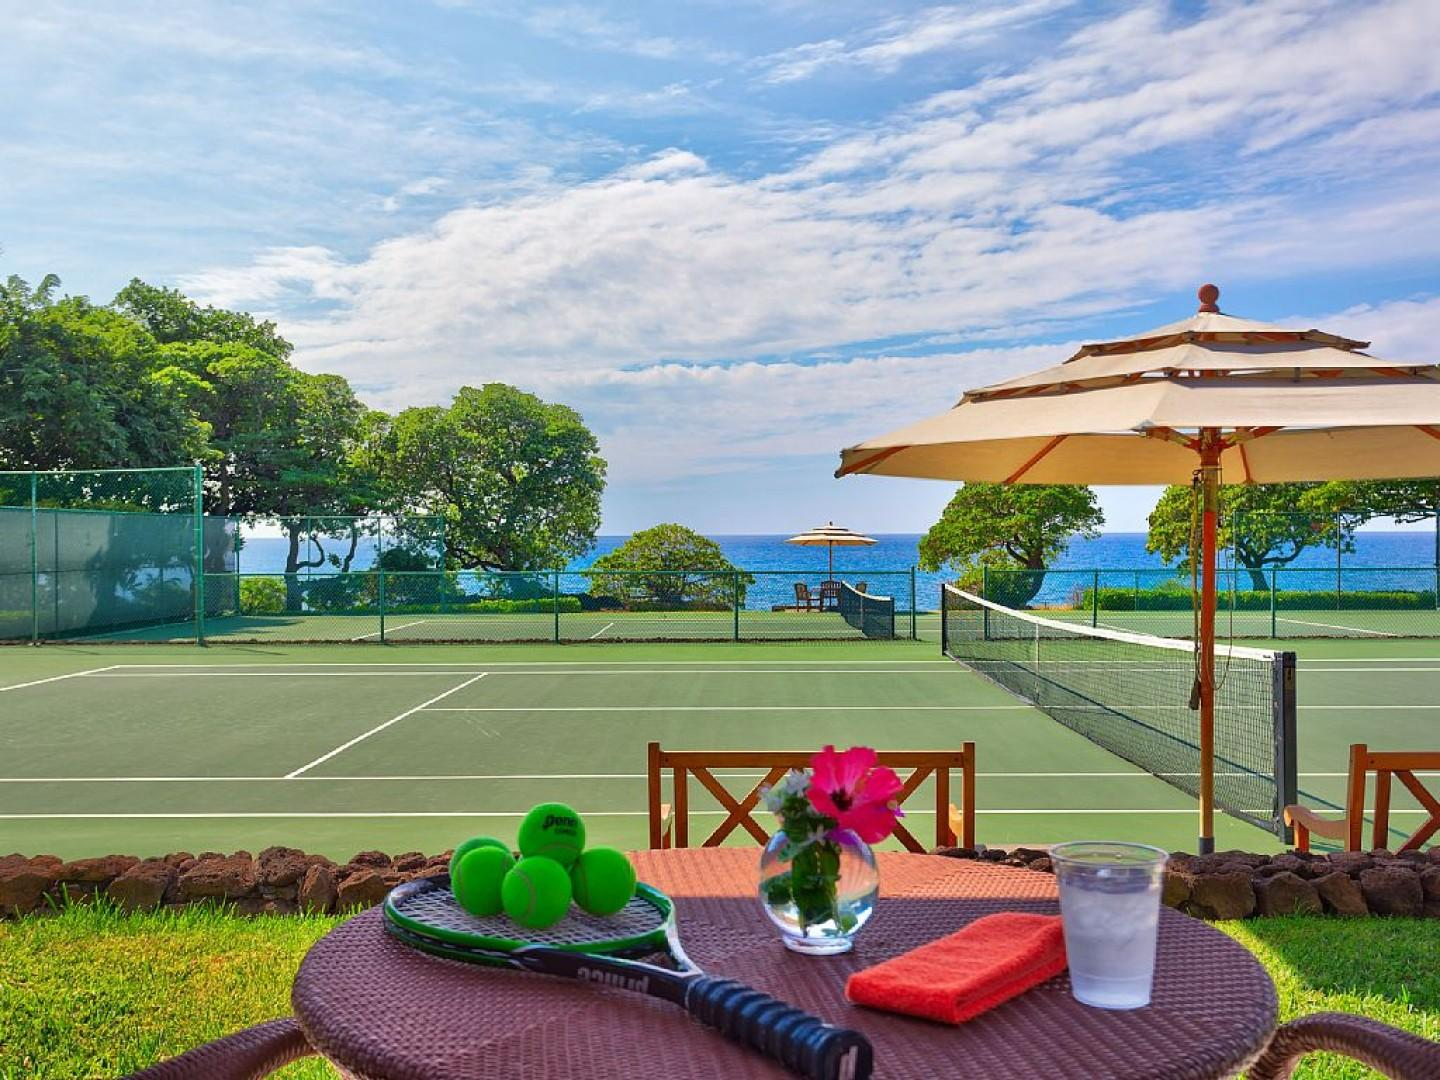 Tennis at the Mauna Kea Resort